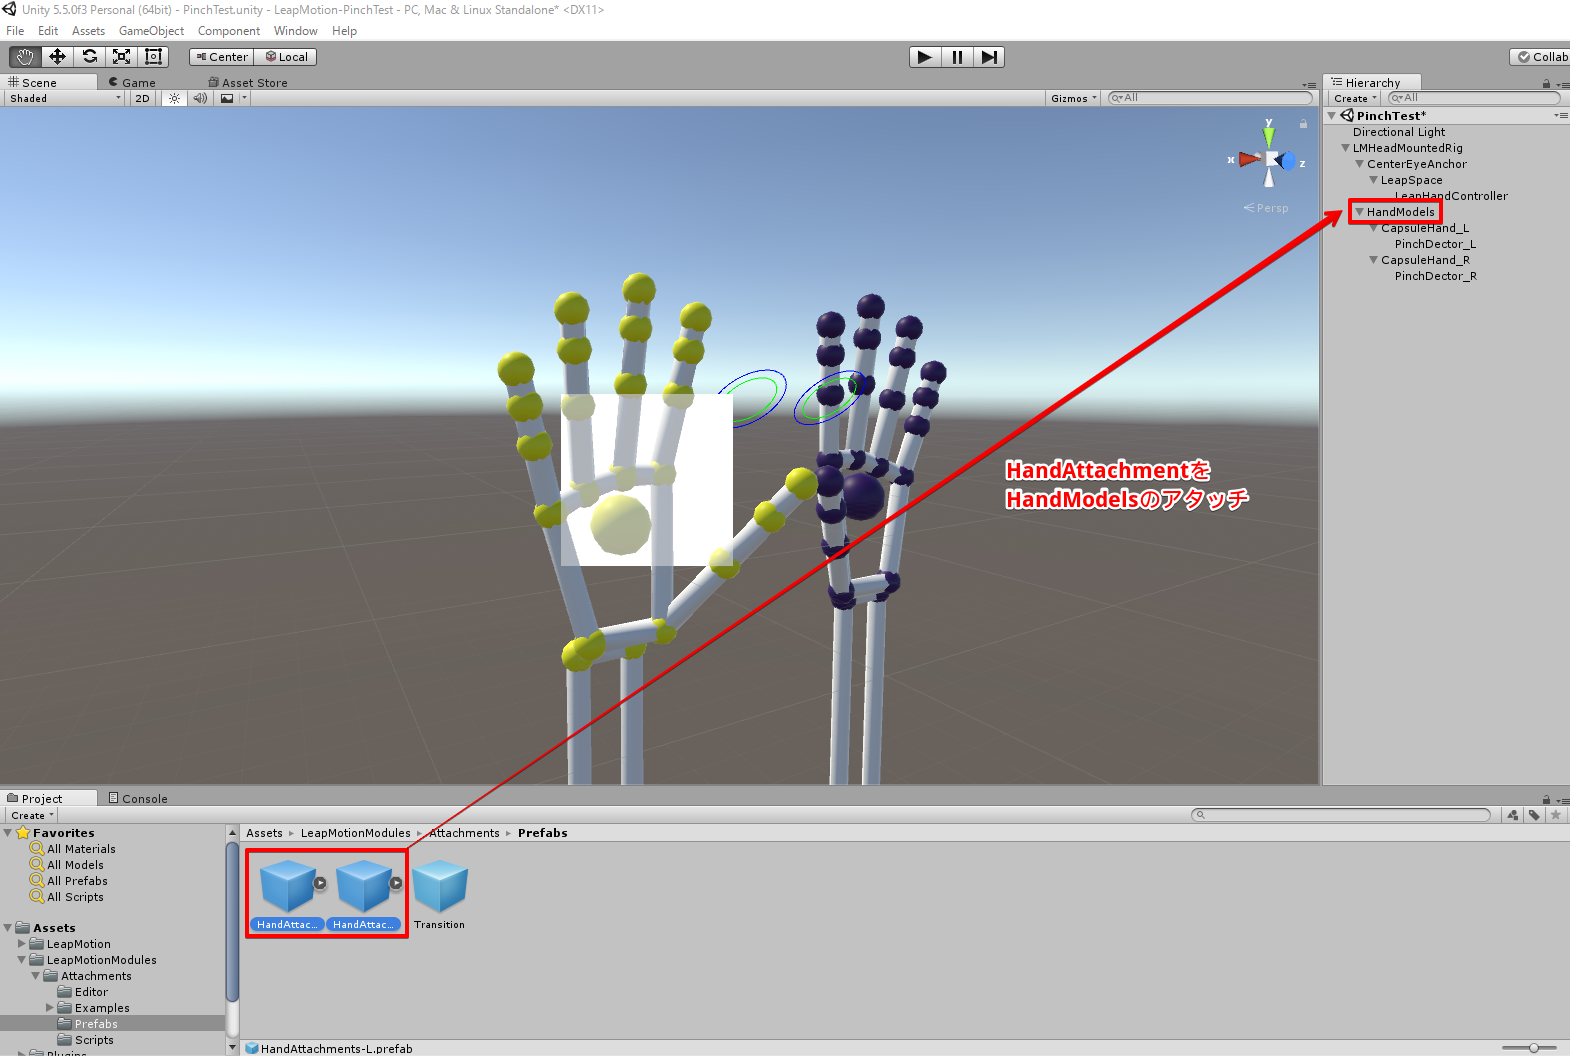 Unity 5.5.0f3 Personal (64bit) - PinchTest.unity - LeapMotion-PinchTest - PC, Mac & Linux Standalone_ _DX11_ 2017-01-09 13.50.03.png (462.2 kB)